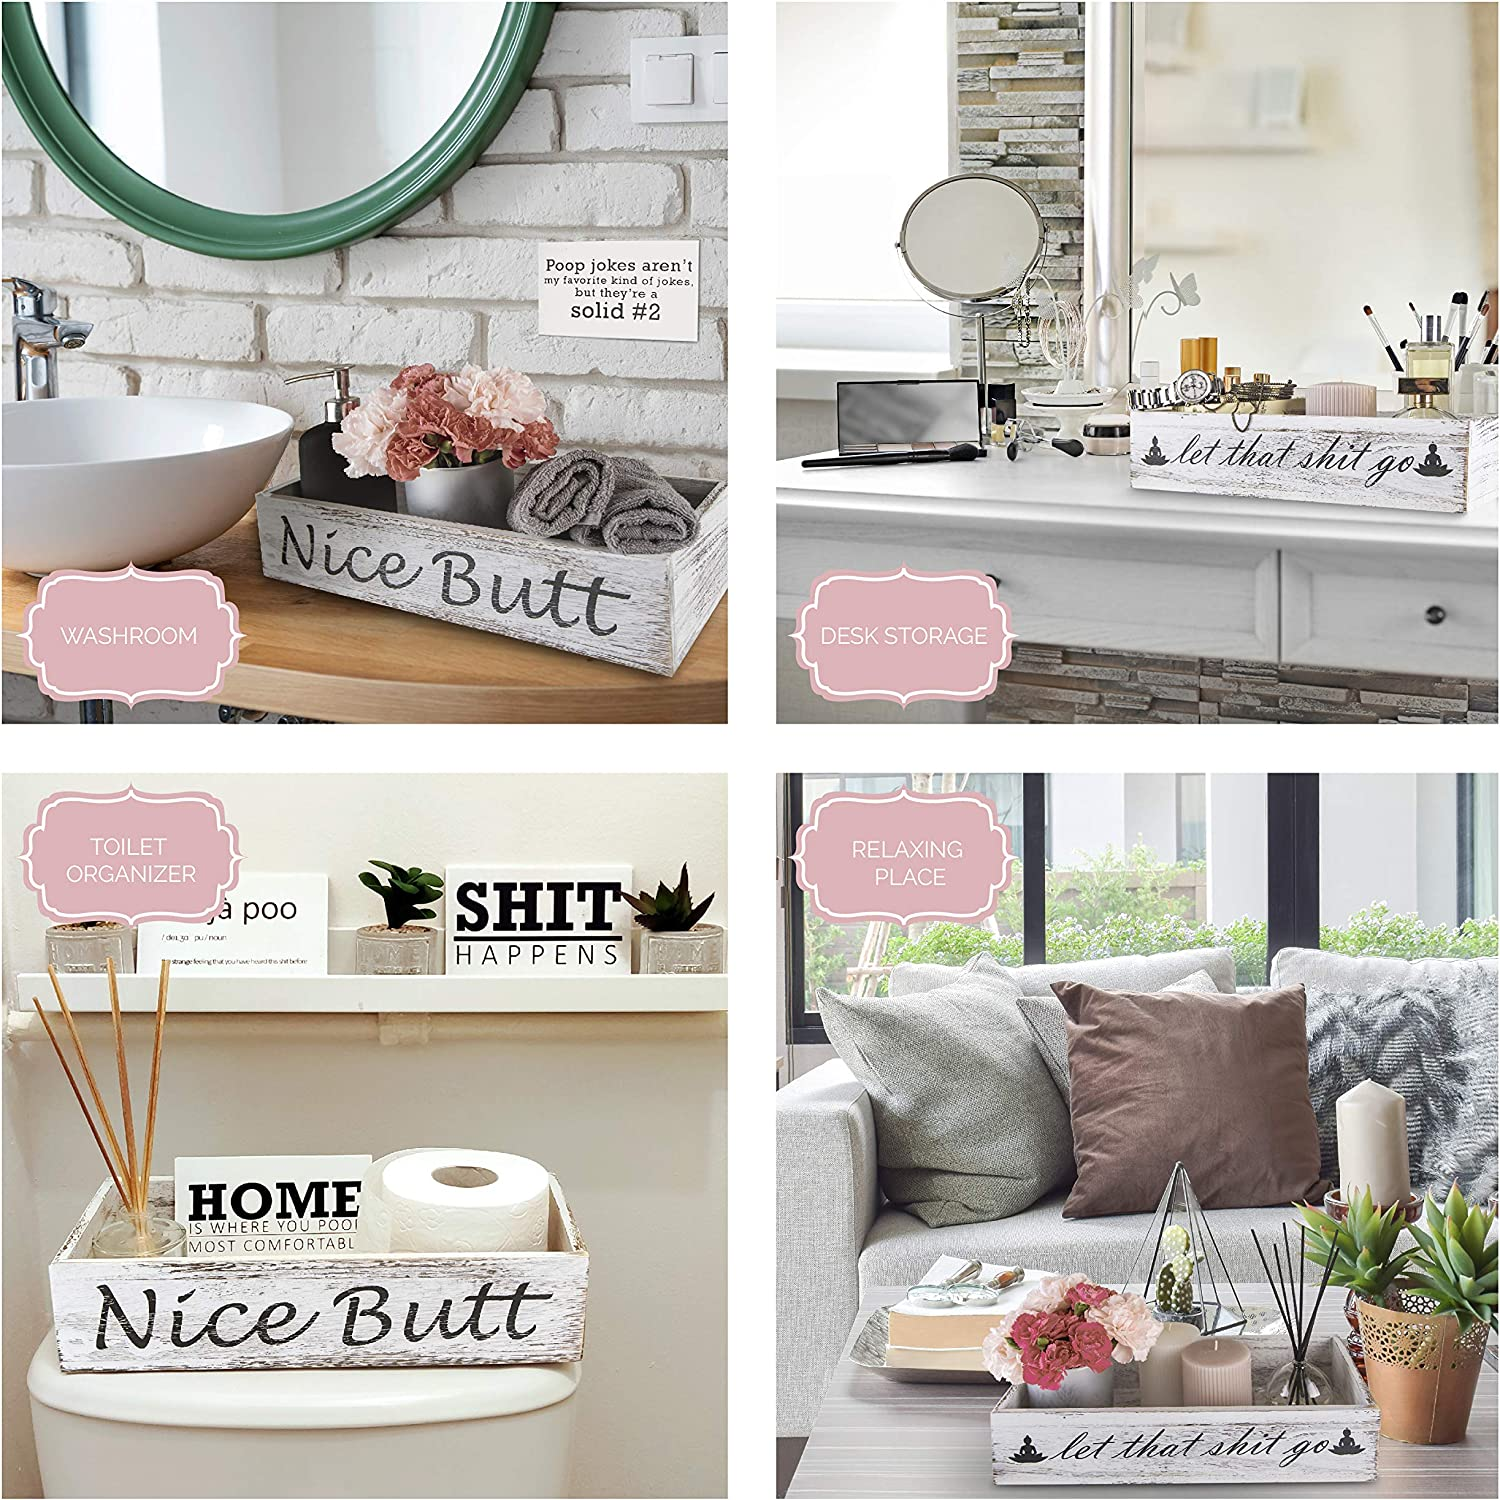 Bathroom Decor Box /& Wall Art Signs Toilet Paper Storage White Bathroom Signs Rustic Bathroom Decor Nice Butt /& Let That Sht Go 2 Sides with Funny Sayings for Farmhouse Home Decor